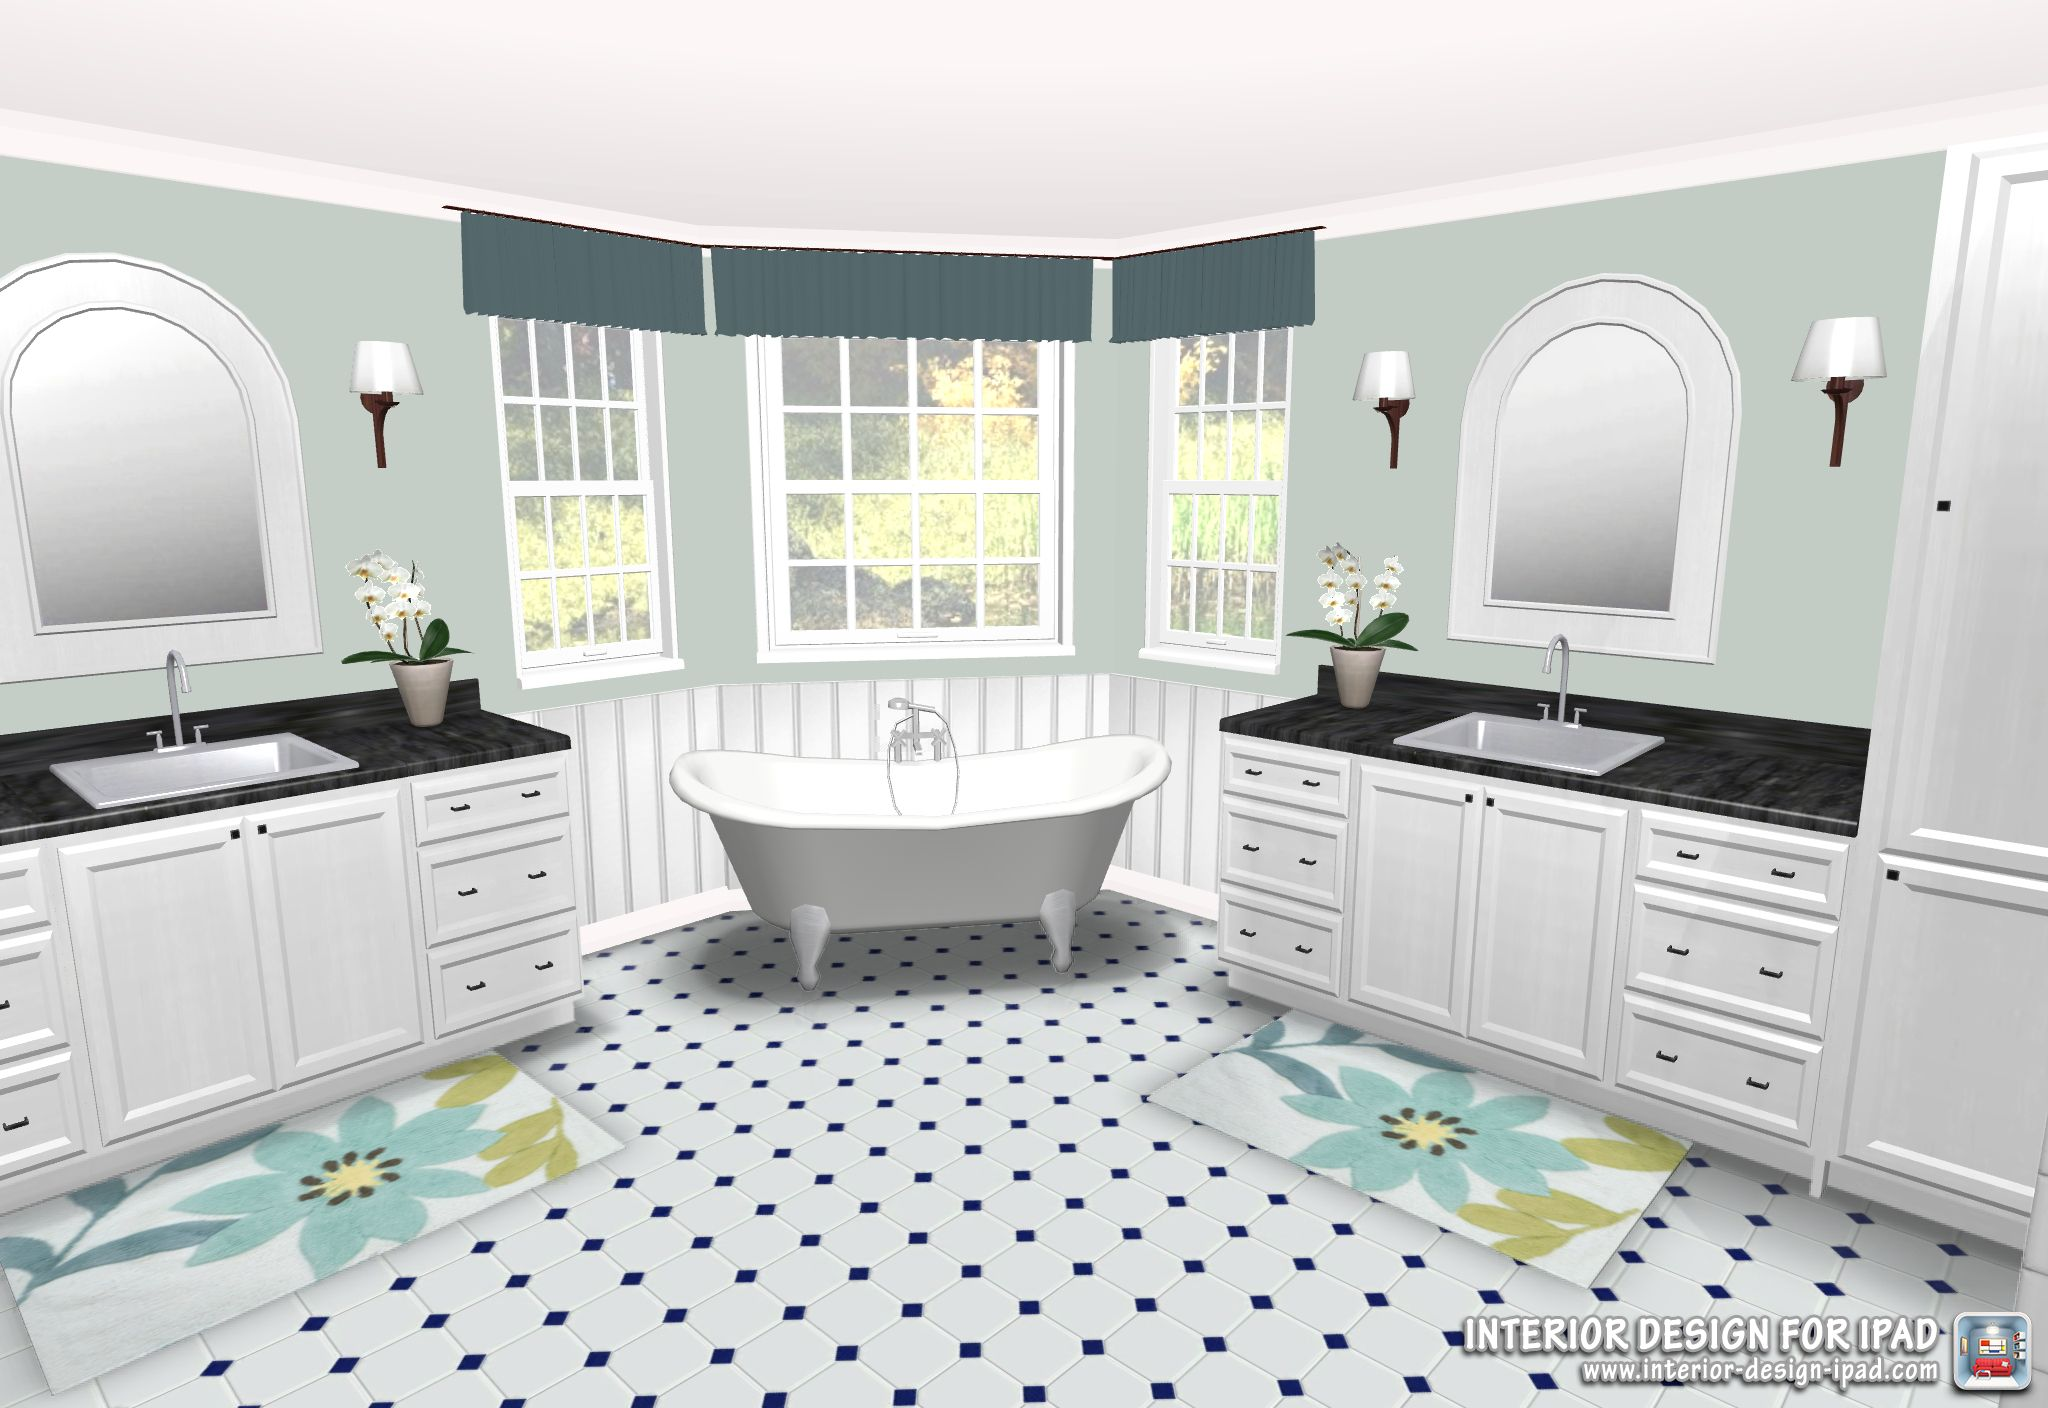 Luxury Bathroom Created With Interior Design For Ipad